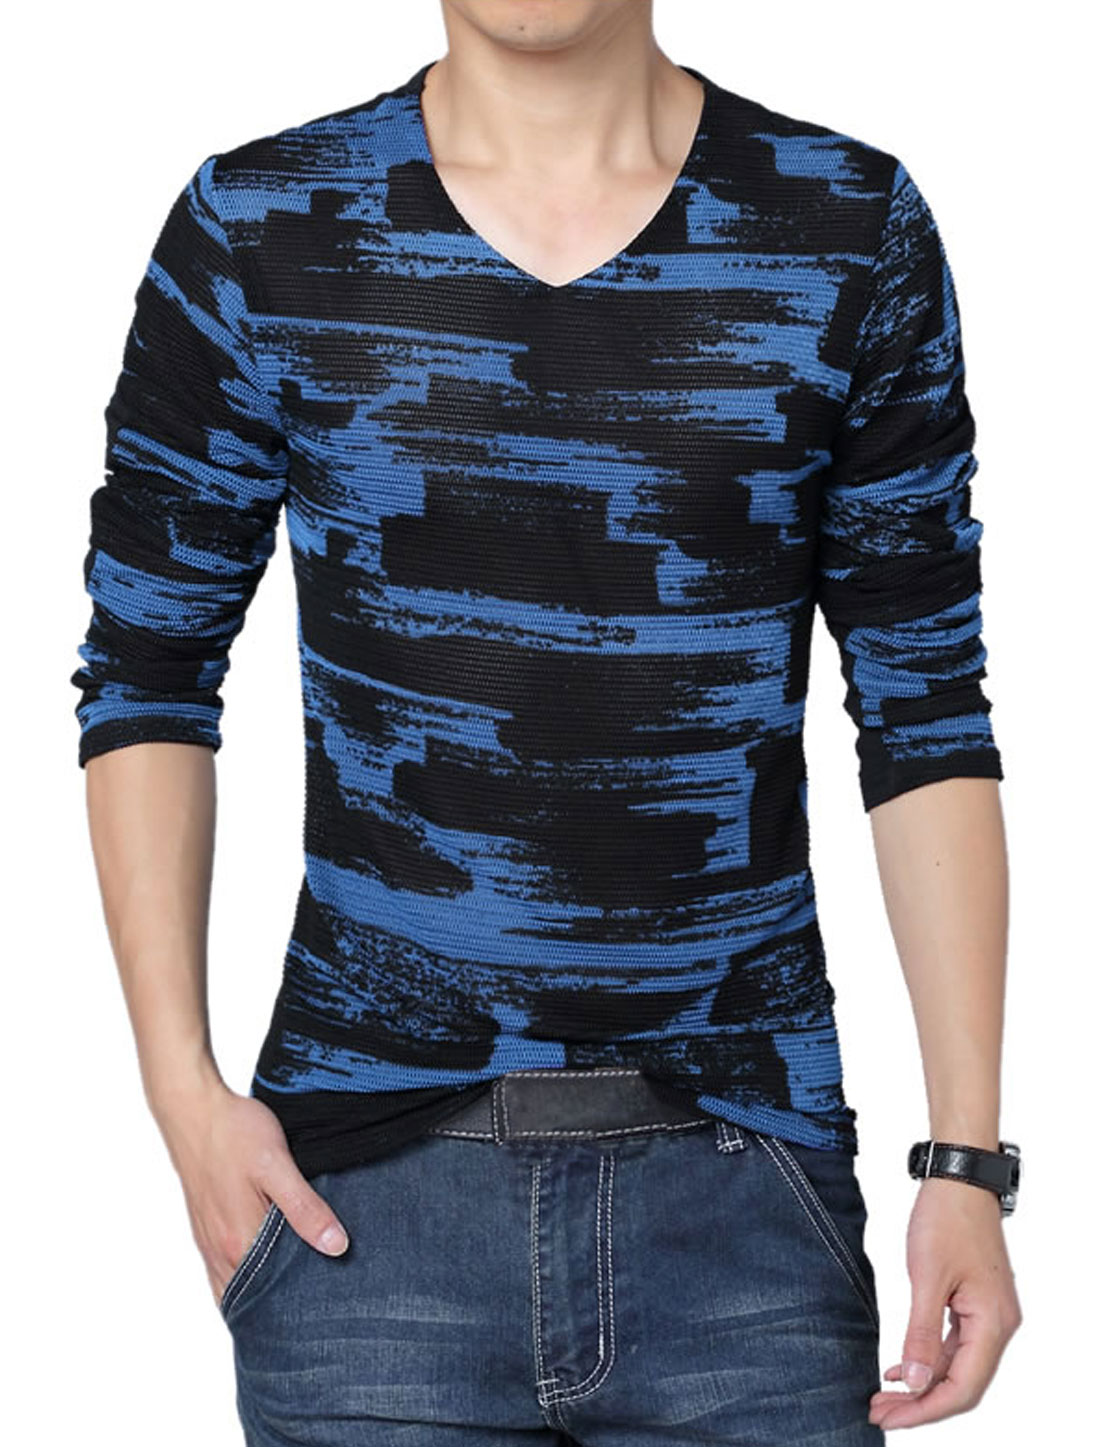 Men Long Sleeve Novelty Prints Stretchy Back Lining Shirt Blue Black L